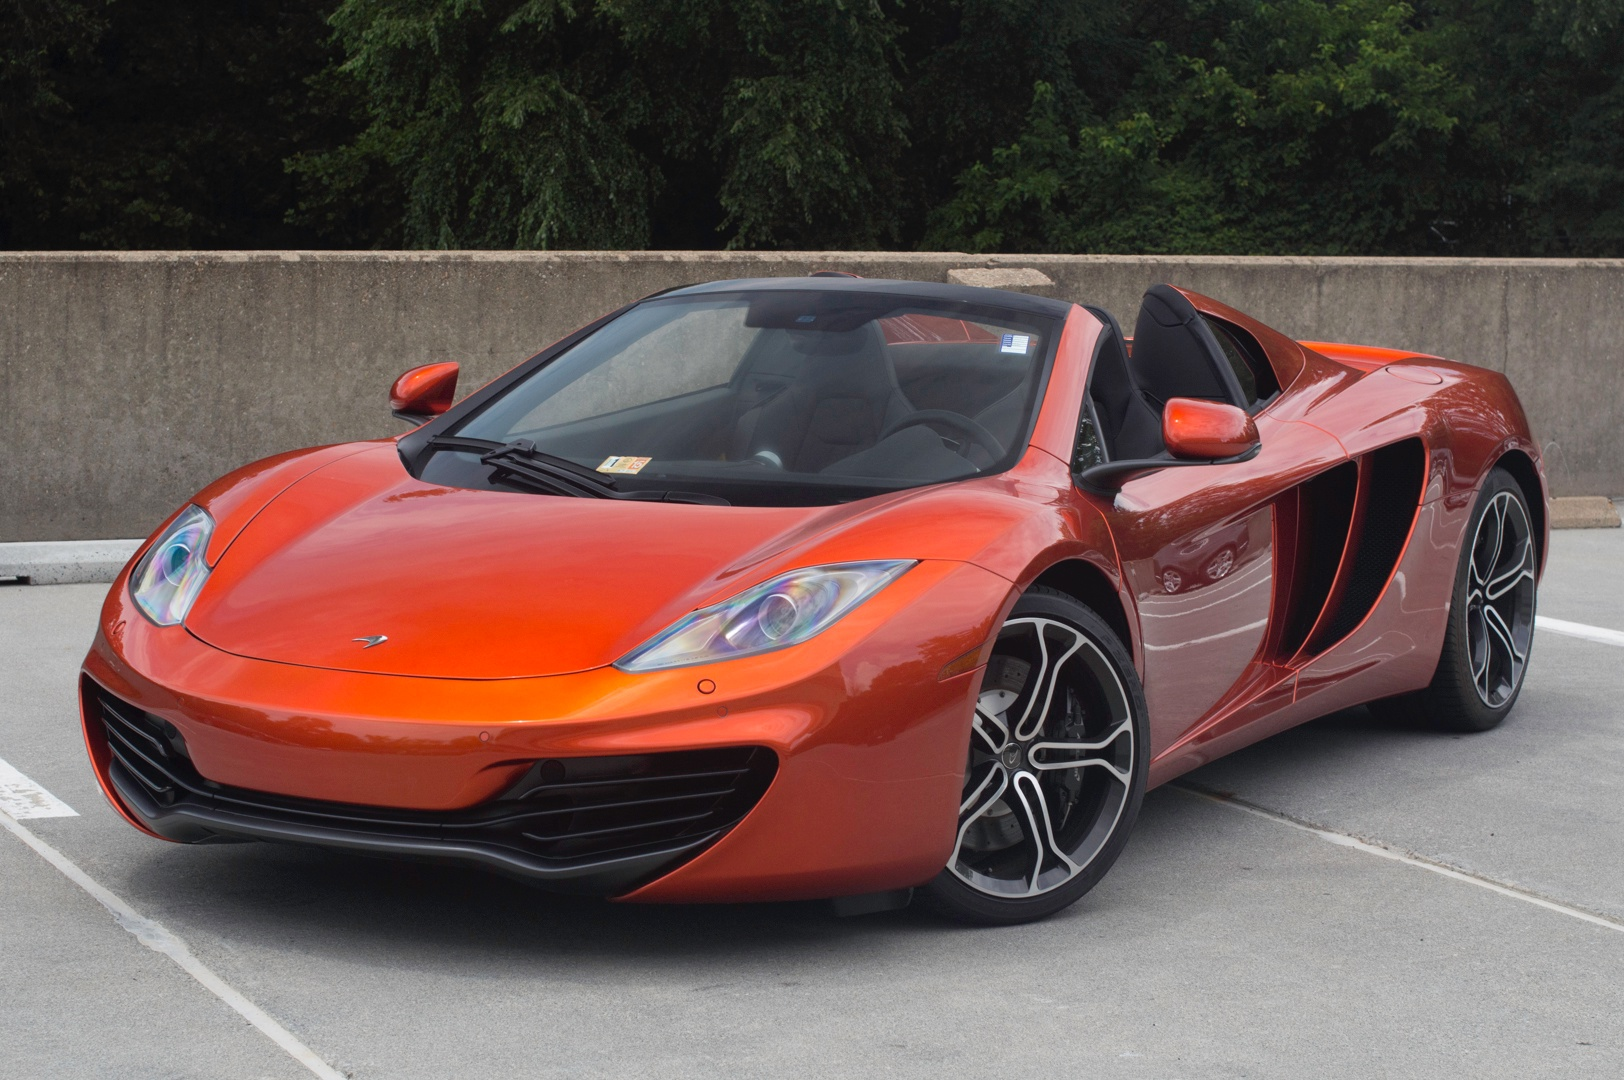 2014 mclaren mp4 12c stock 4n003229 for sale near vienna va va mclaren dealer for sale in. Black Bedroom Furniture Sets. Home Design Ideas